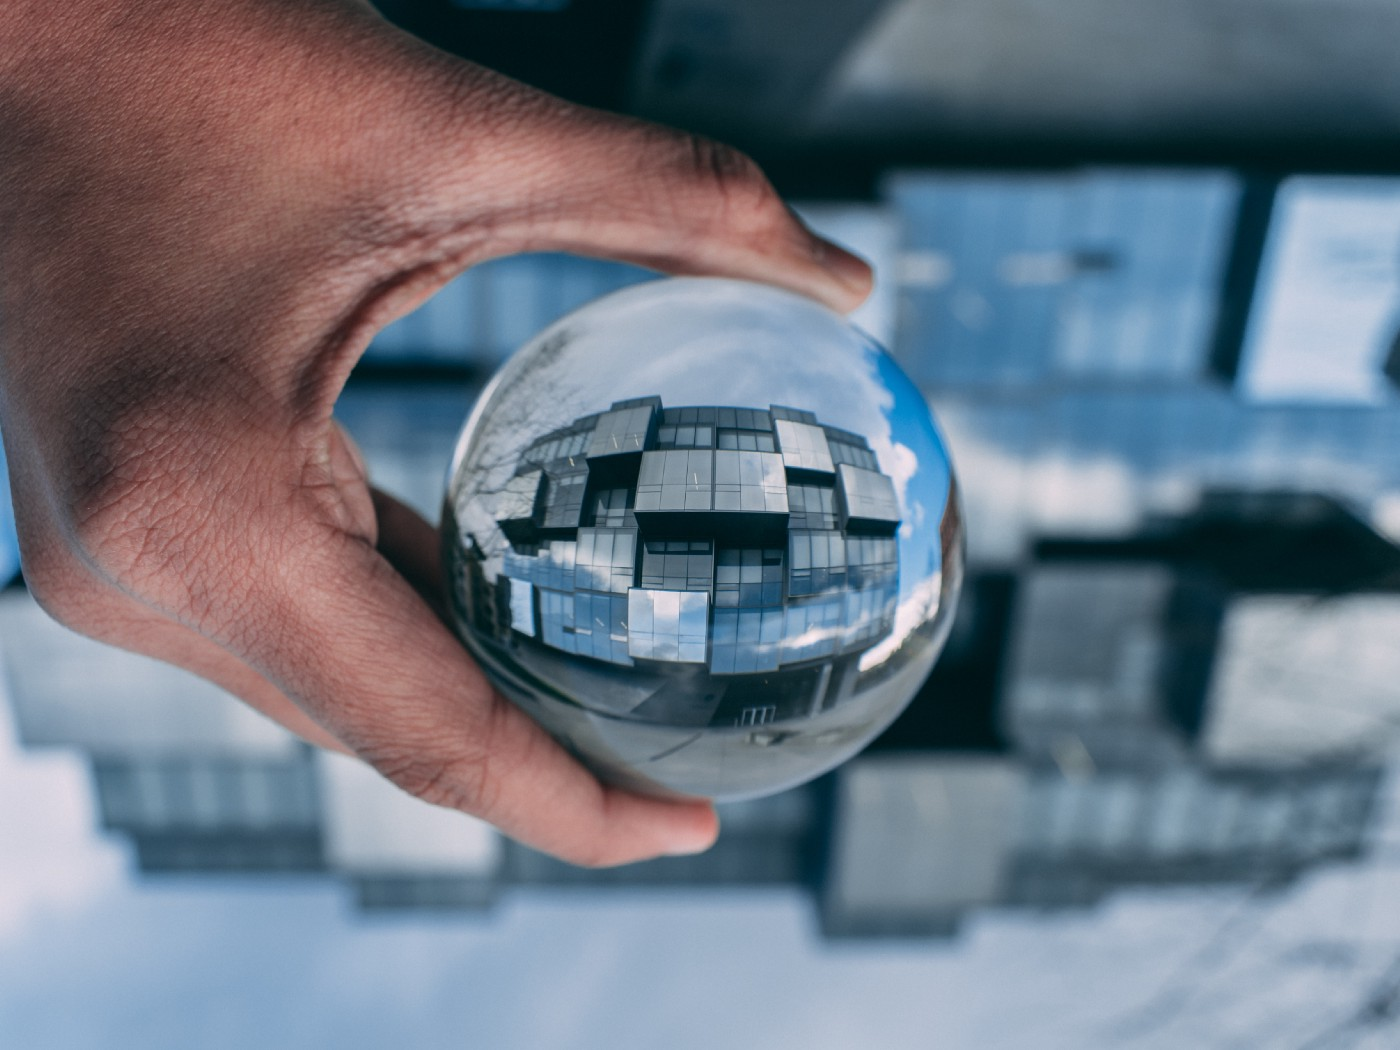 A hand holding a glass ball, which shows a focused mirror image of the blurry glass building behind it.